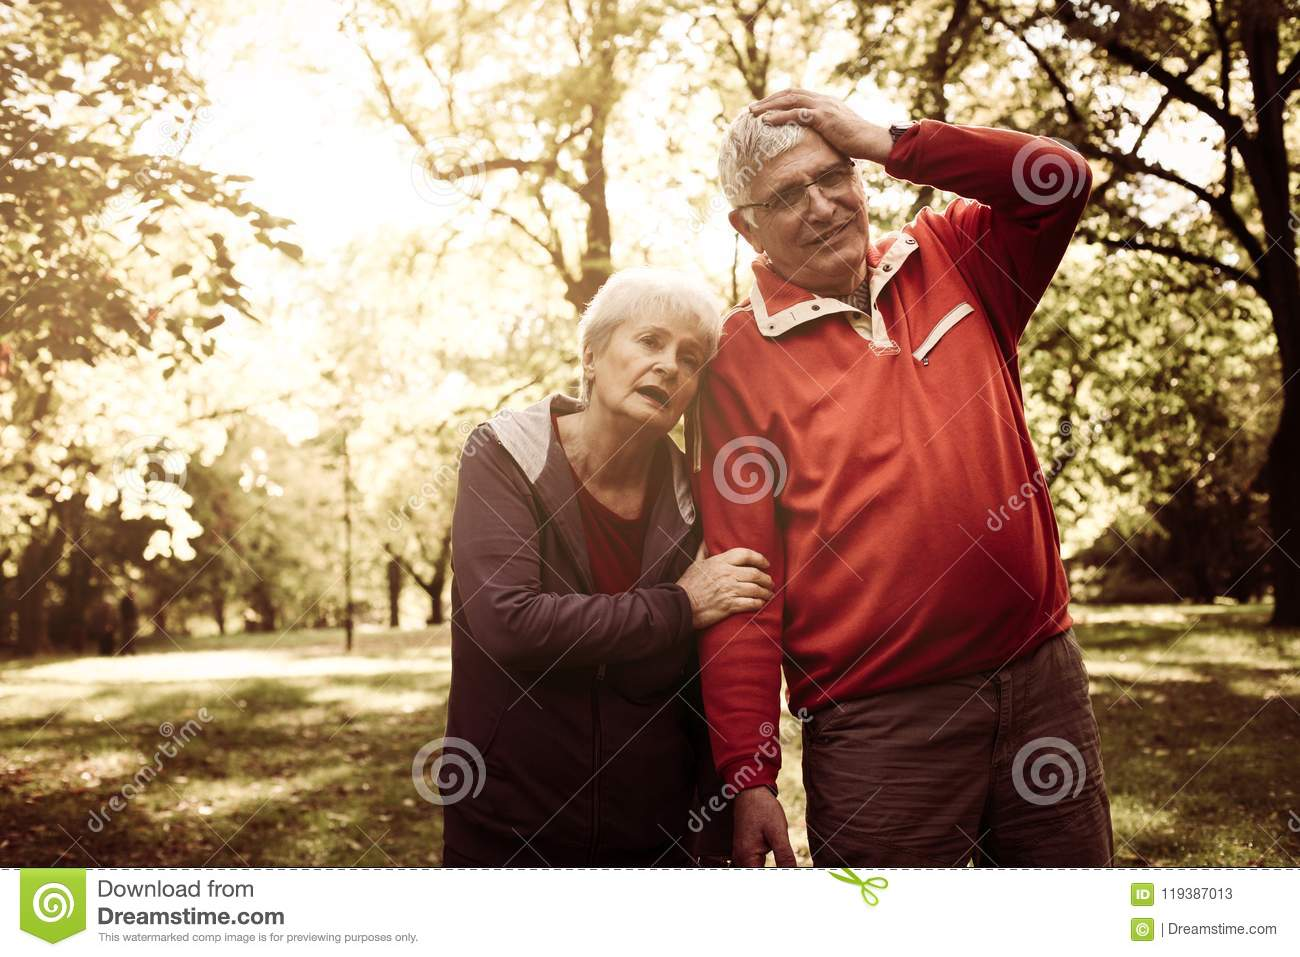 Tired senior couple standing in park after exercise.